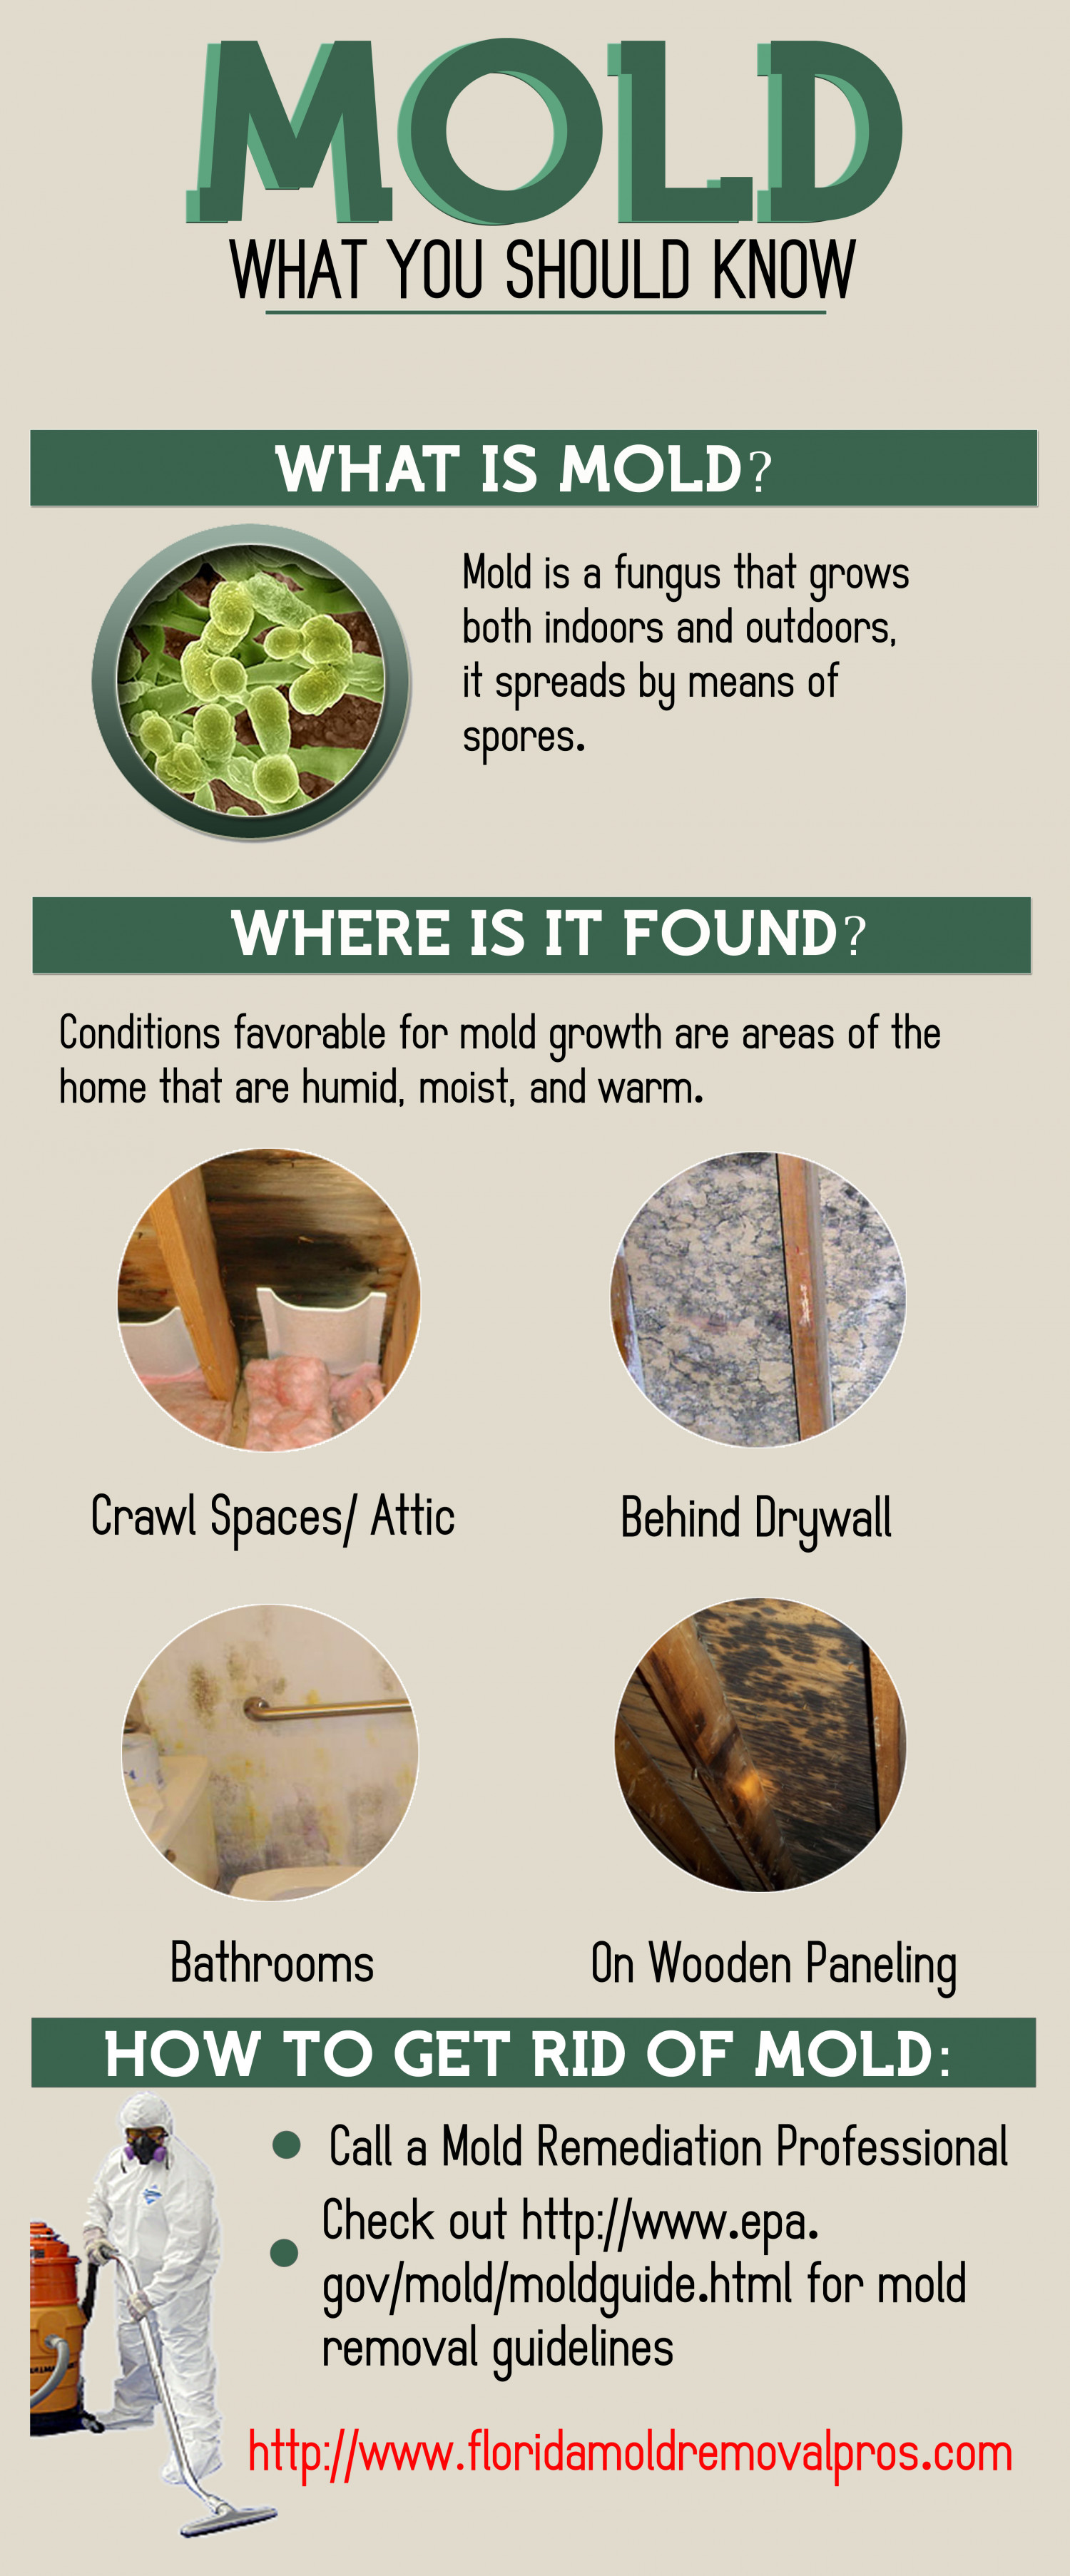 Mold What You Should Know Infographic